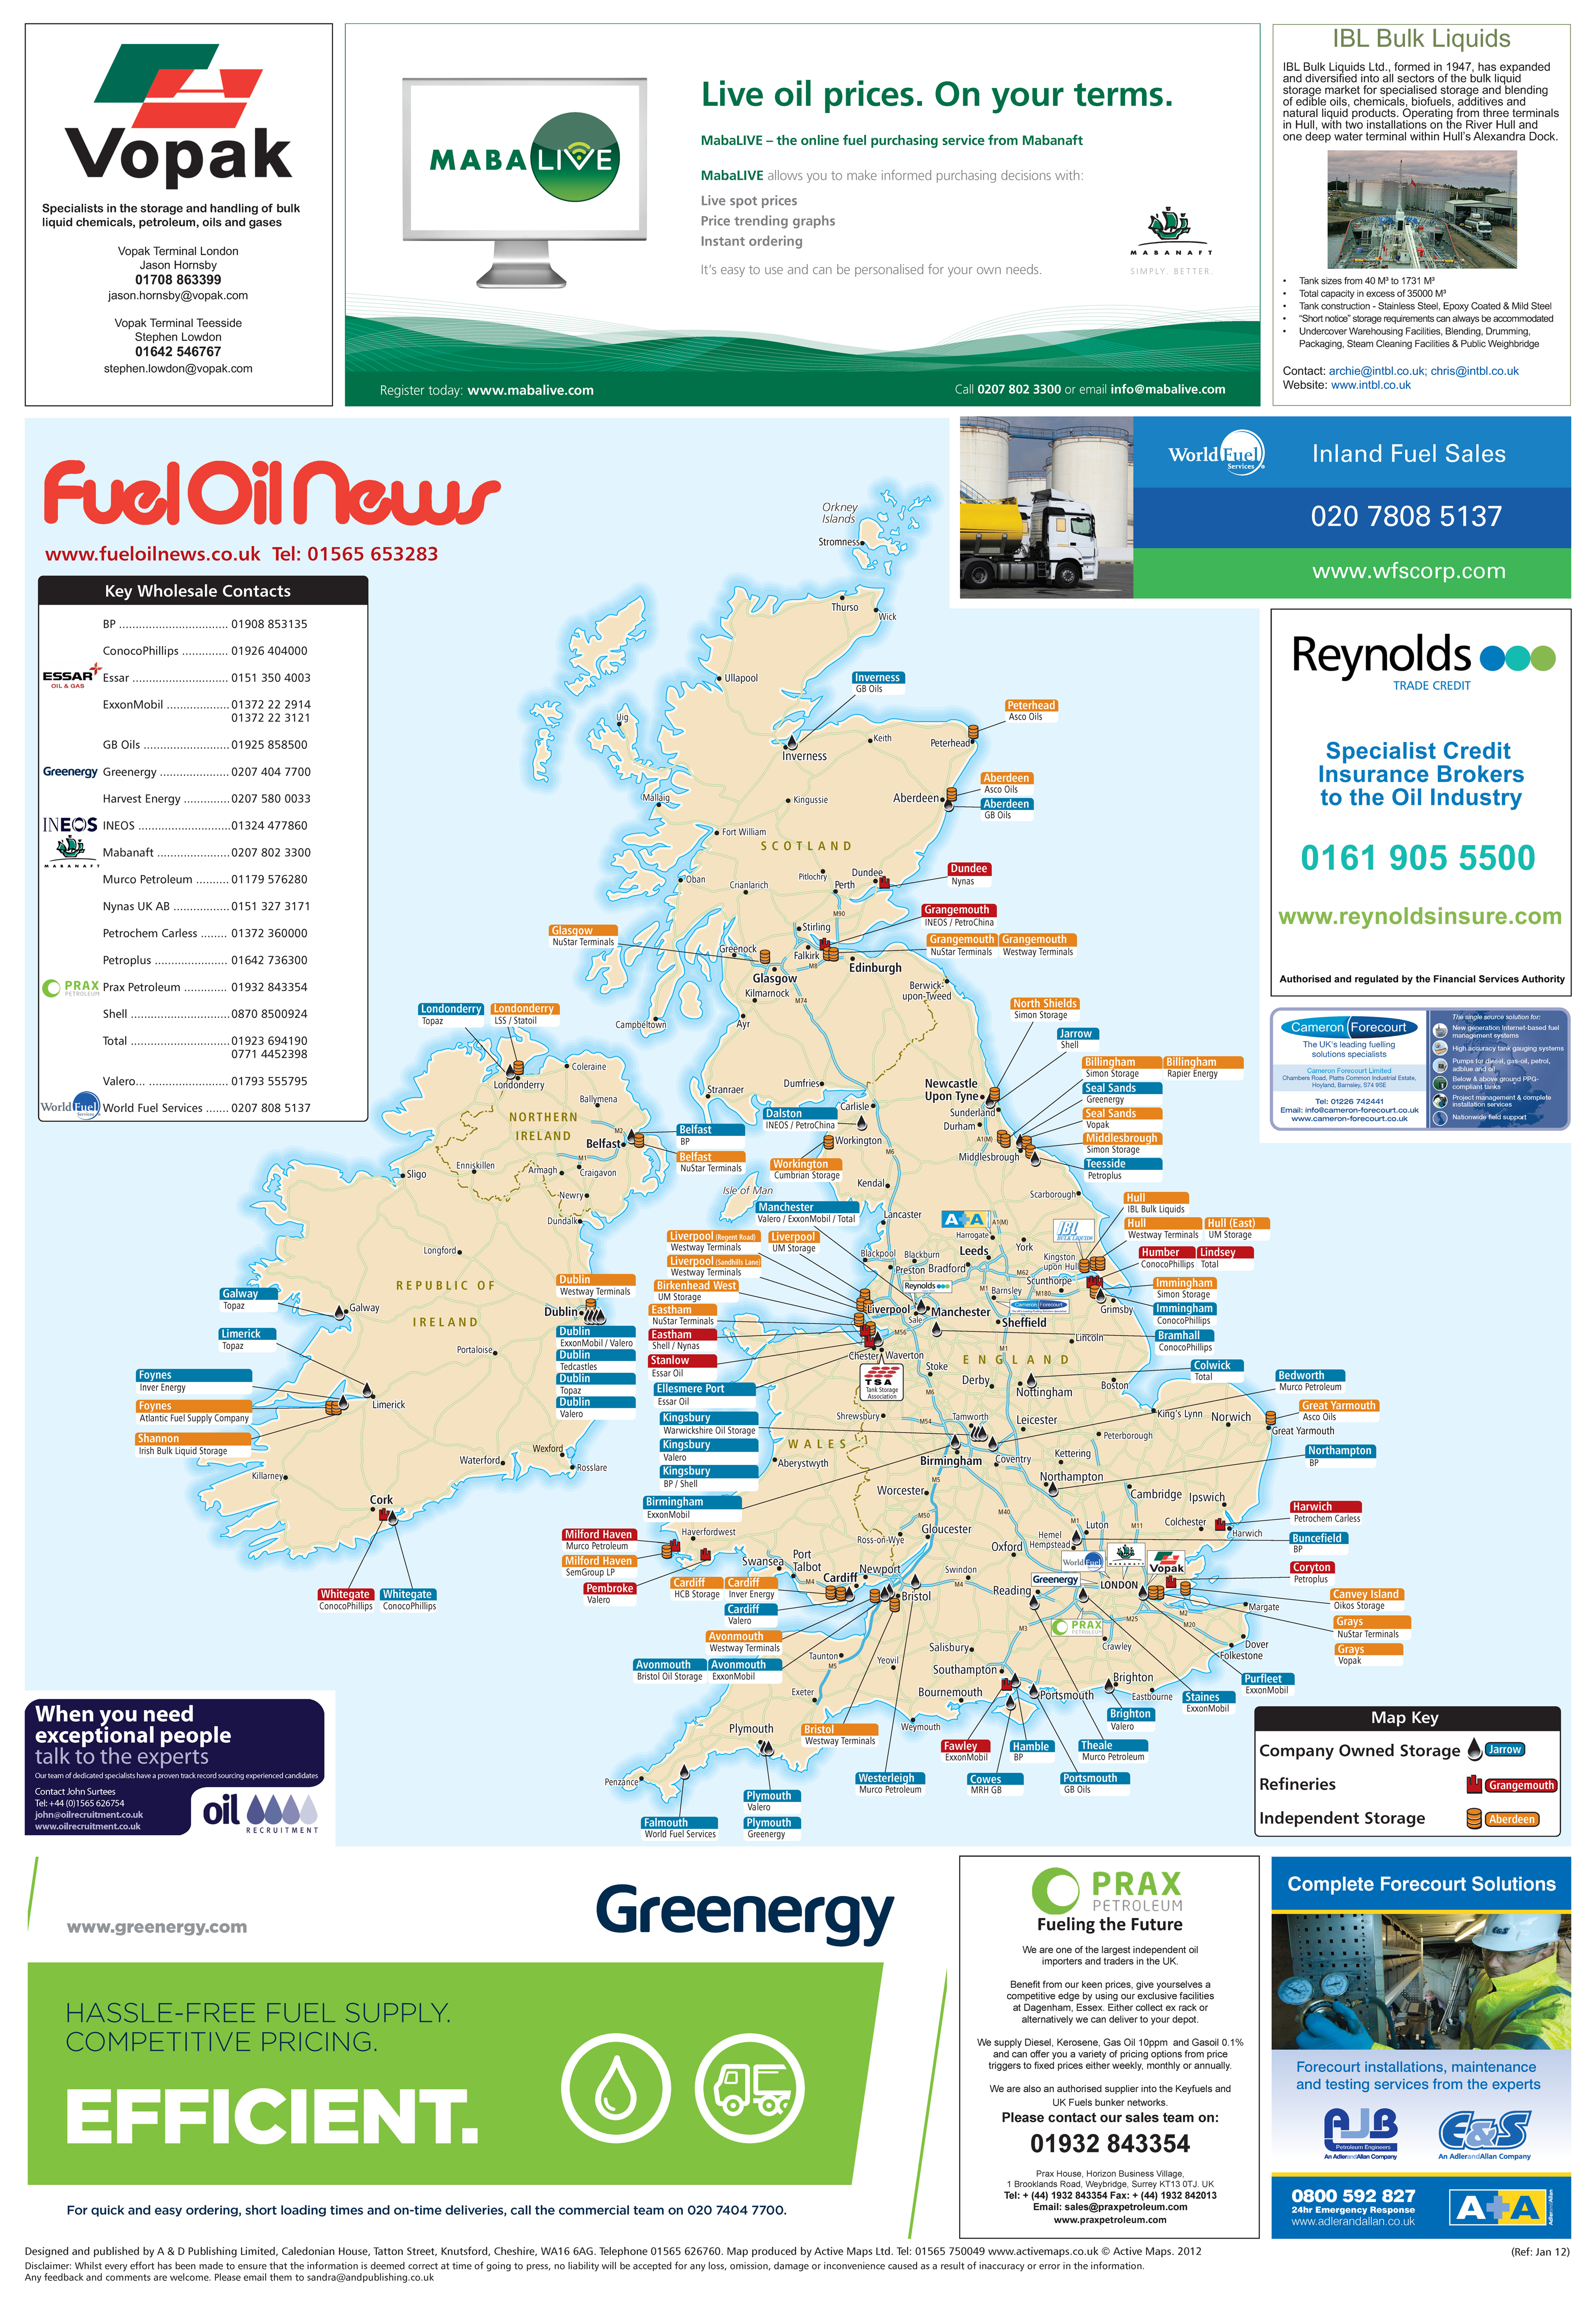 Fuel Oil News wall map 2012